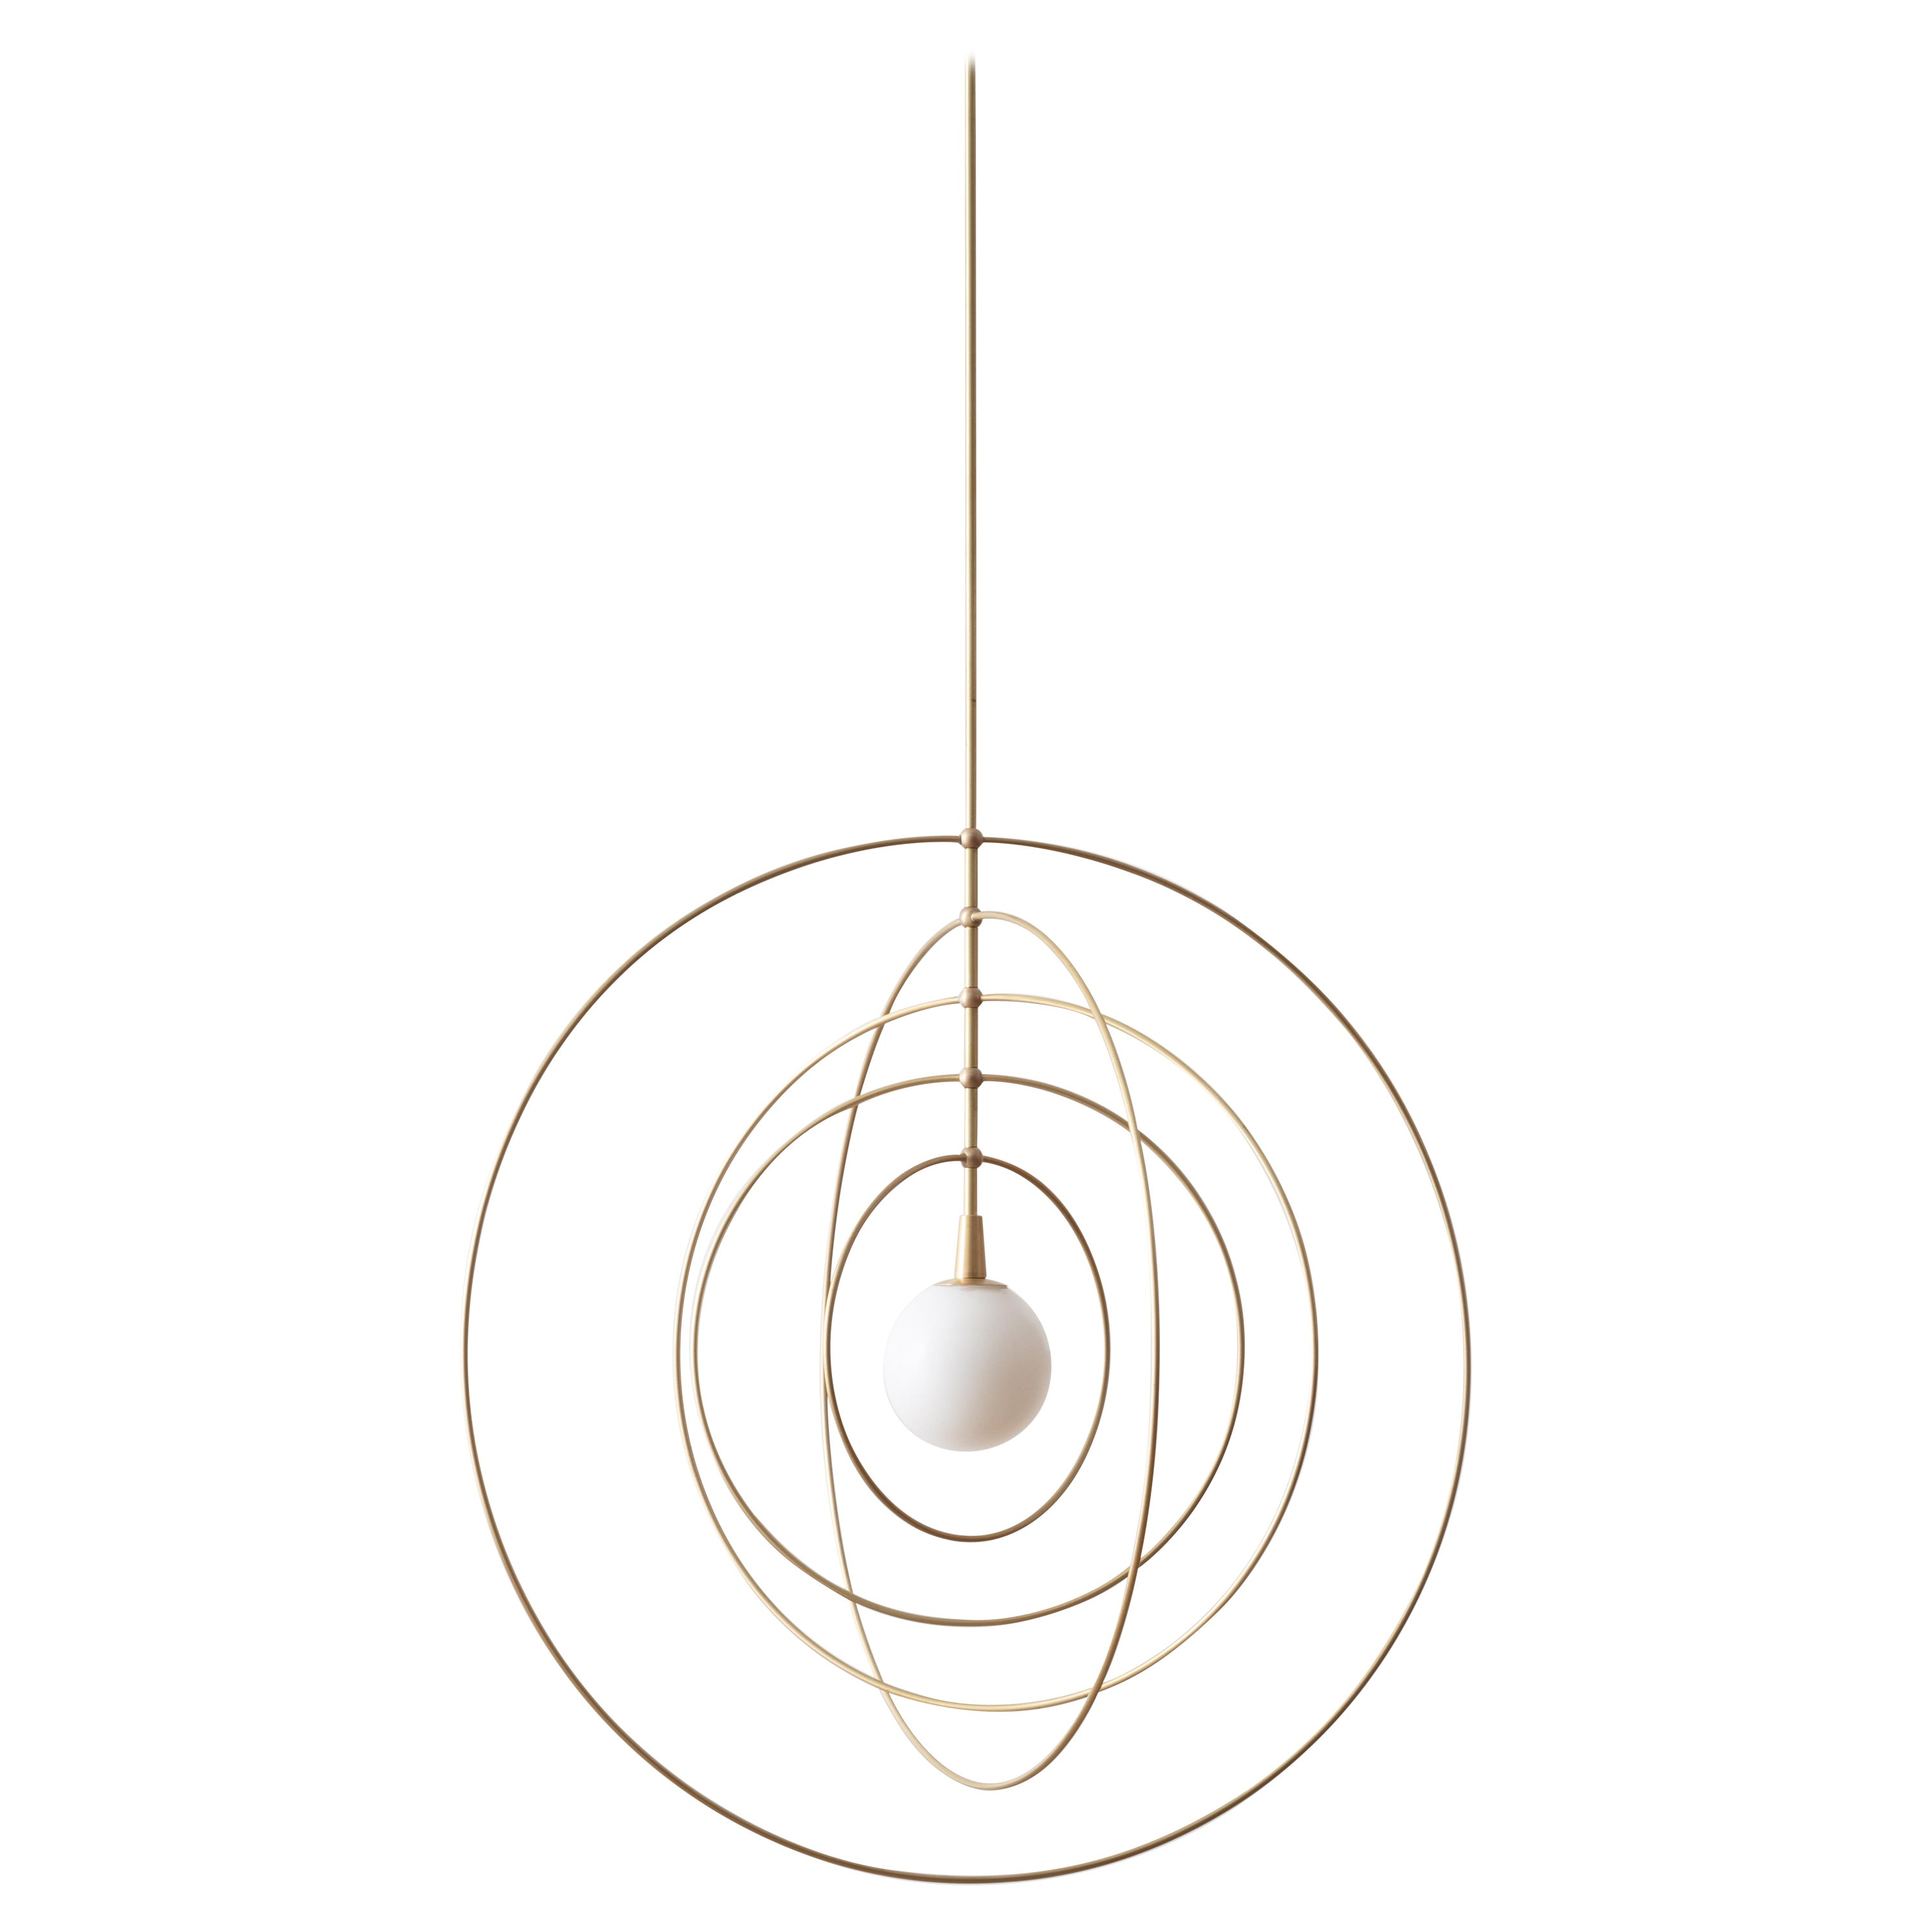 Circle Mobile Pendant LED Kinetic Sculpture with Blown Glass and Brass Rings